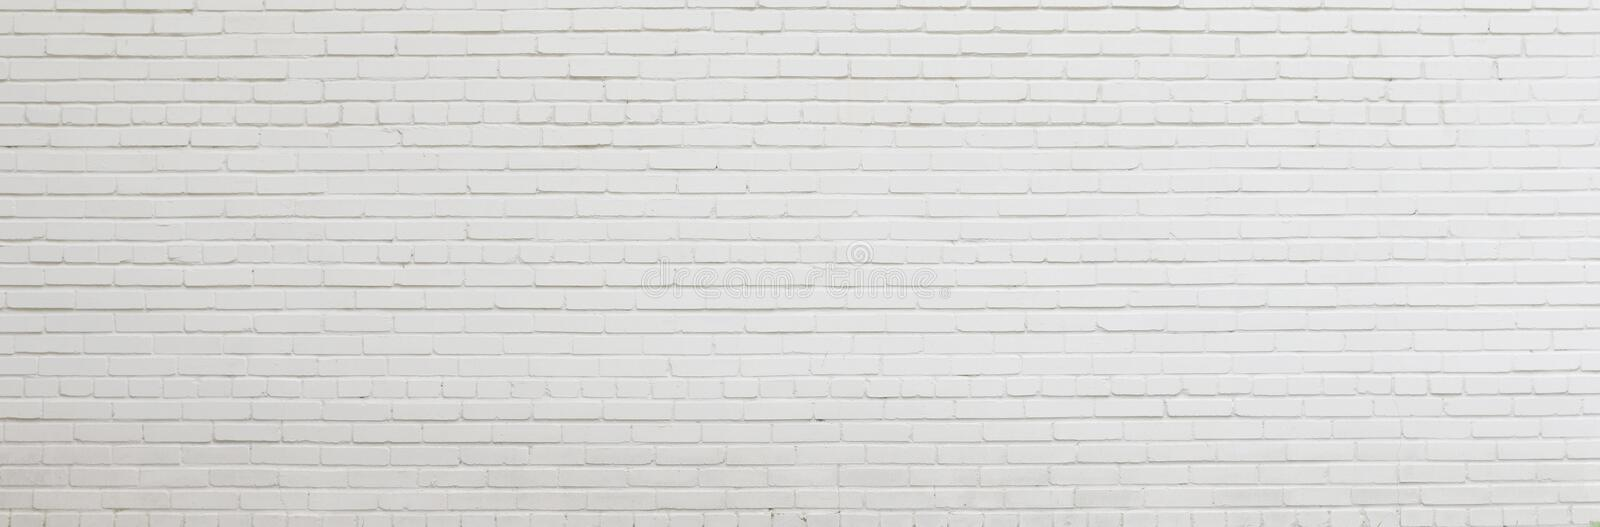 Brick wall painted with white paint. stock photography